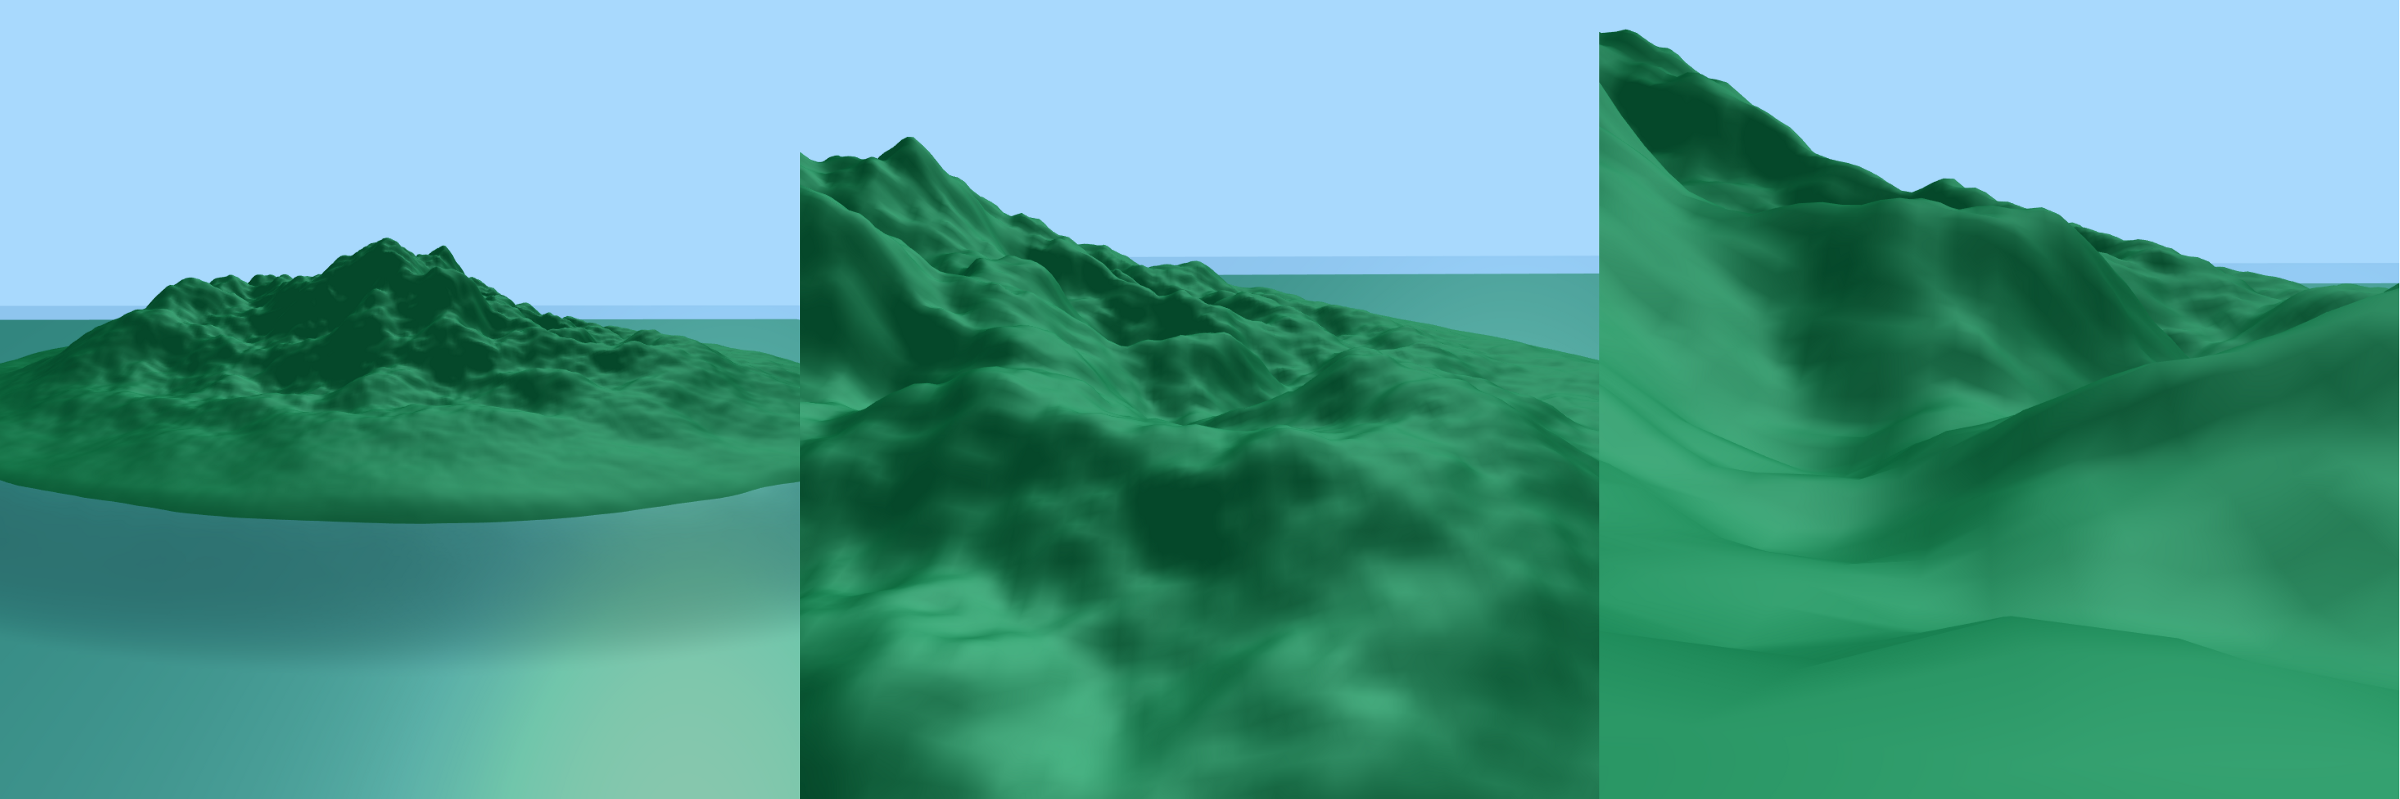 How to Make Mountains Memorable With Perlin Noise - By